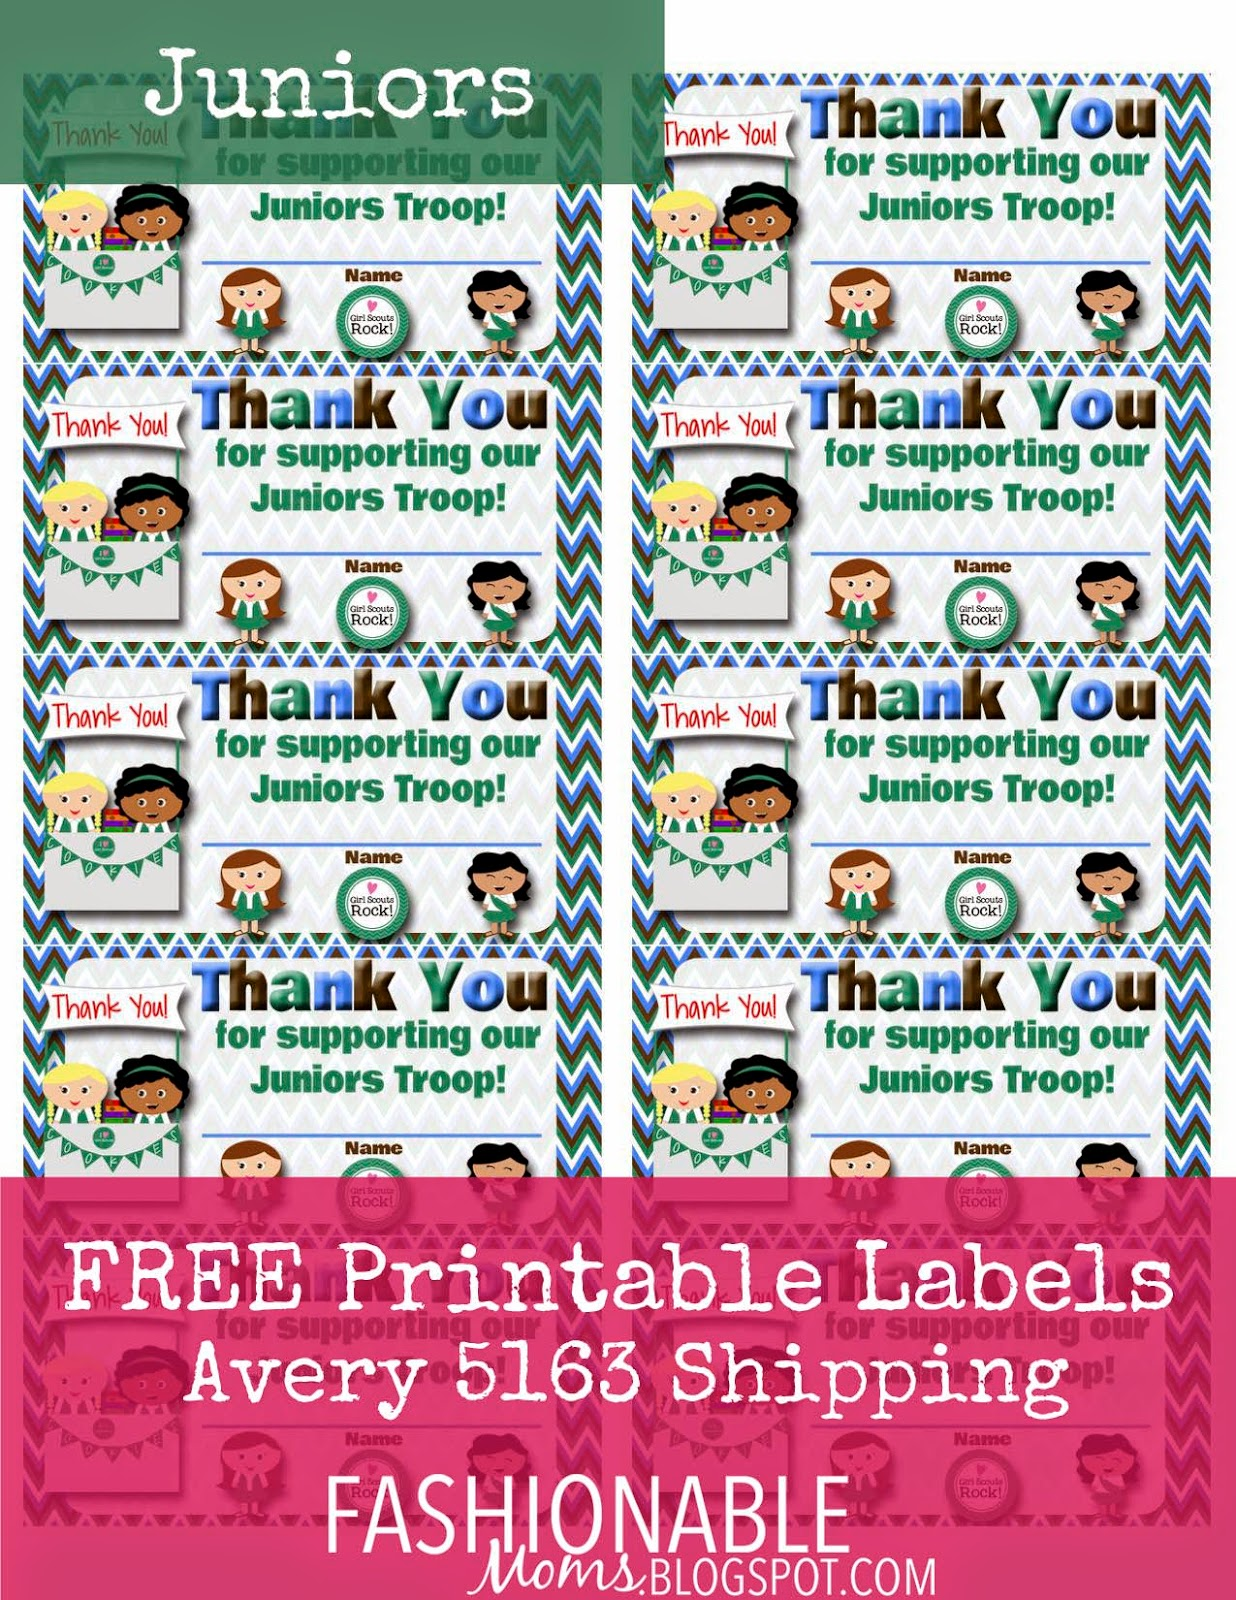 Fashionable Moms Free Printable Thank You Labels For